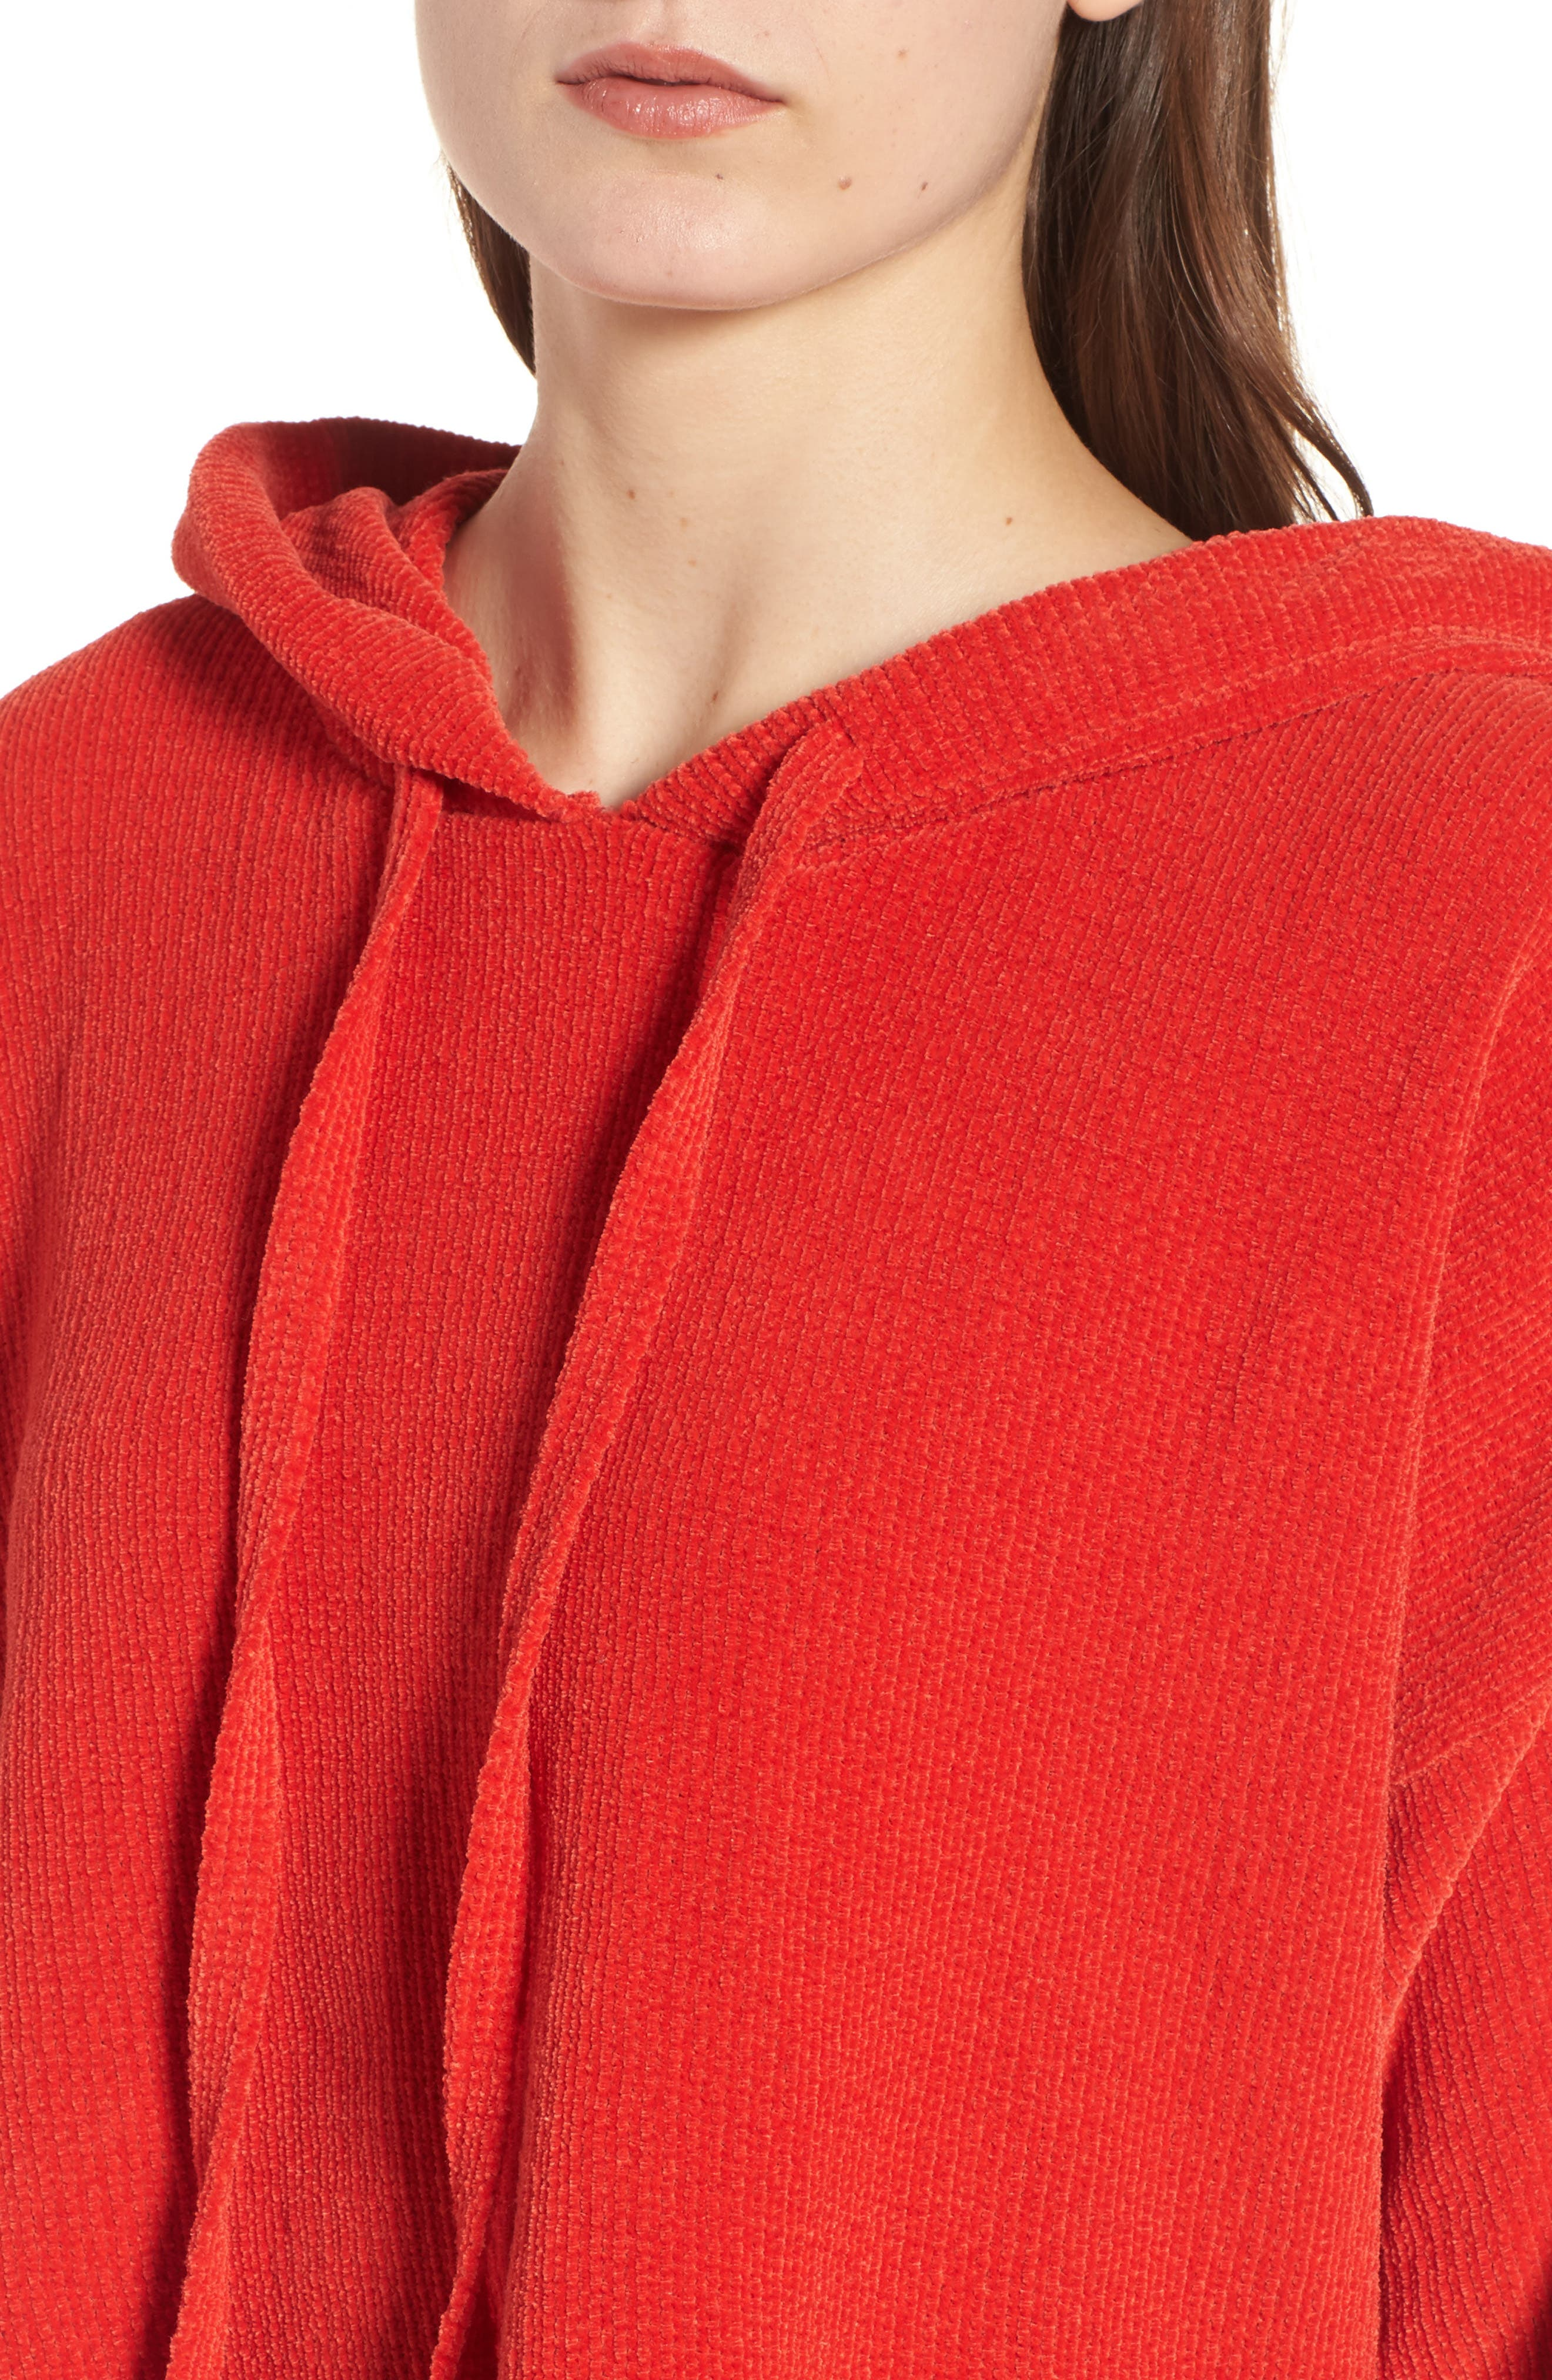 Chenille Crop Hoodie,                             Alternate thumbnail 4, color,                             950